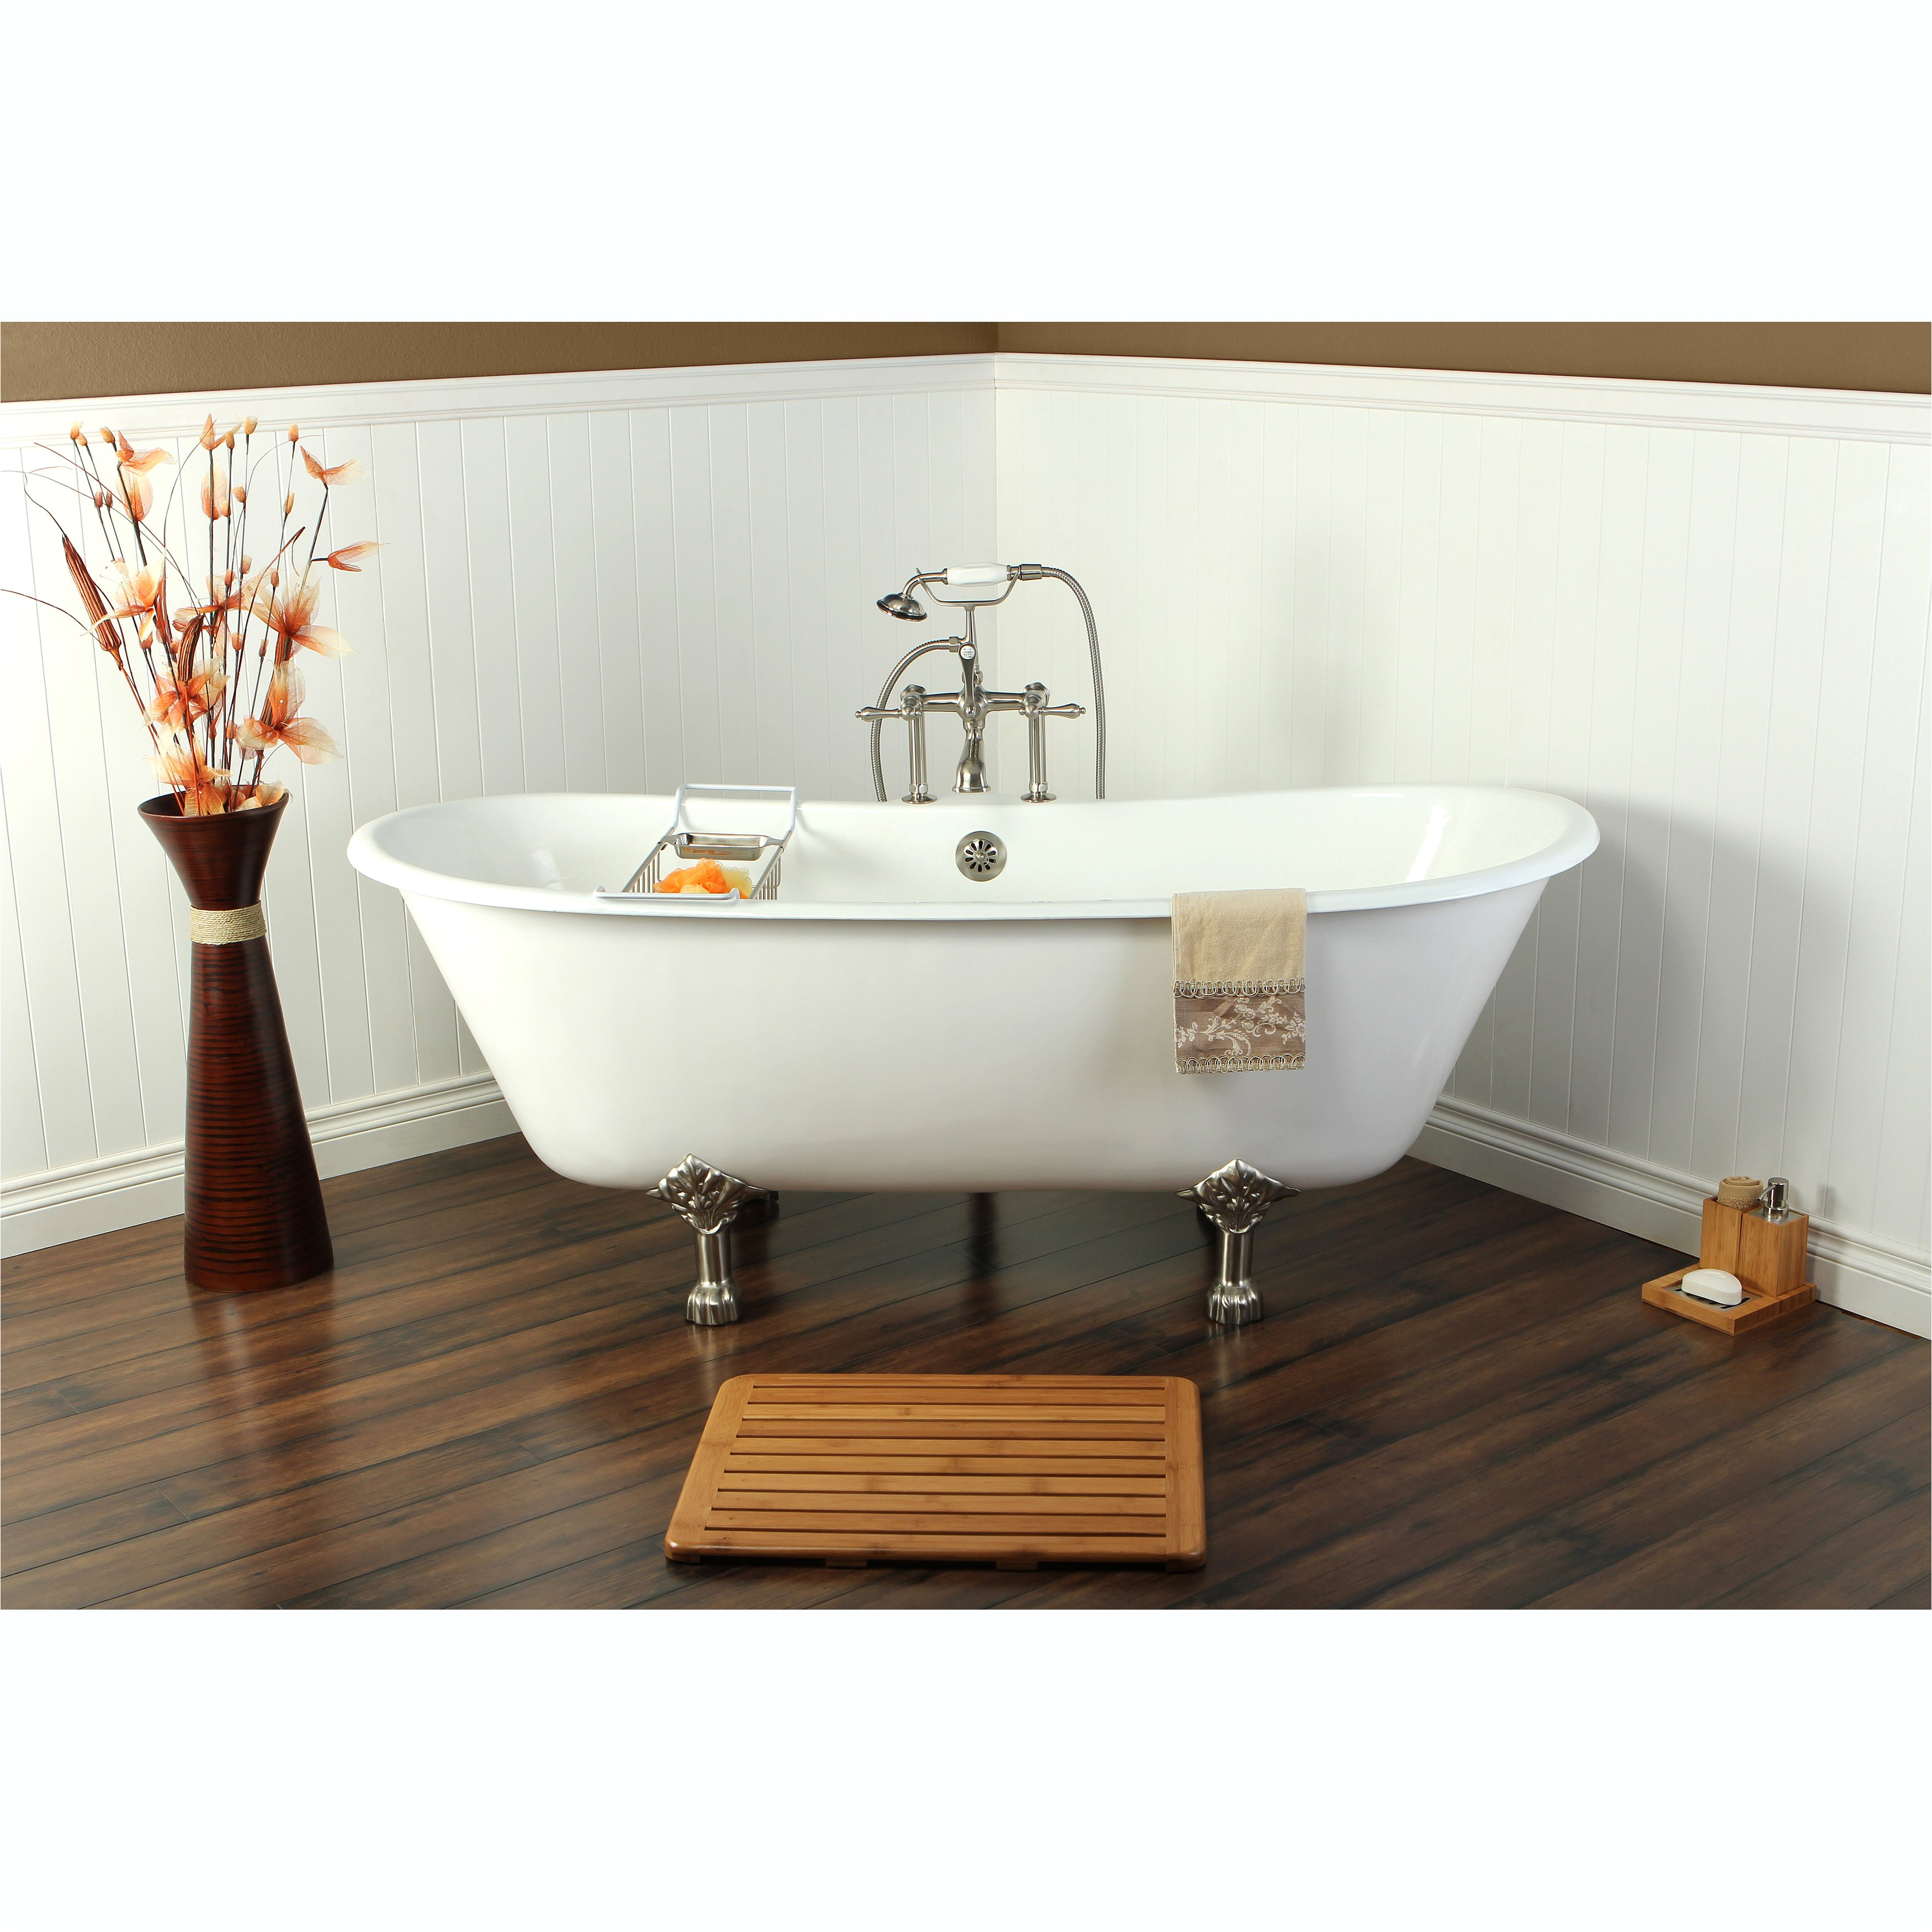 shop 67 inch cast iron double slipper clawfoot bathtub free shipping today overstock com 7729144